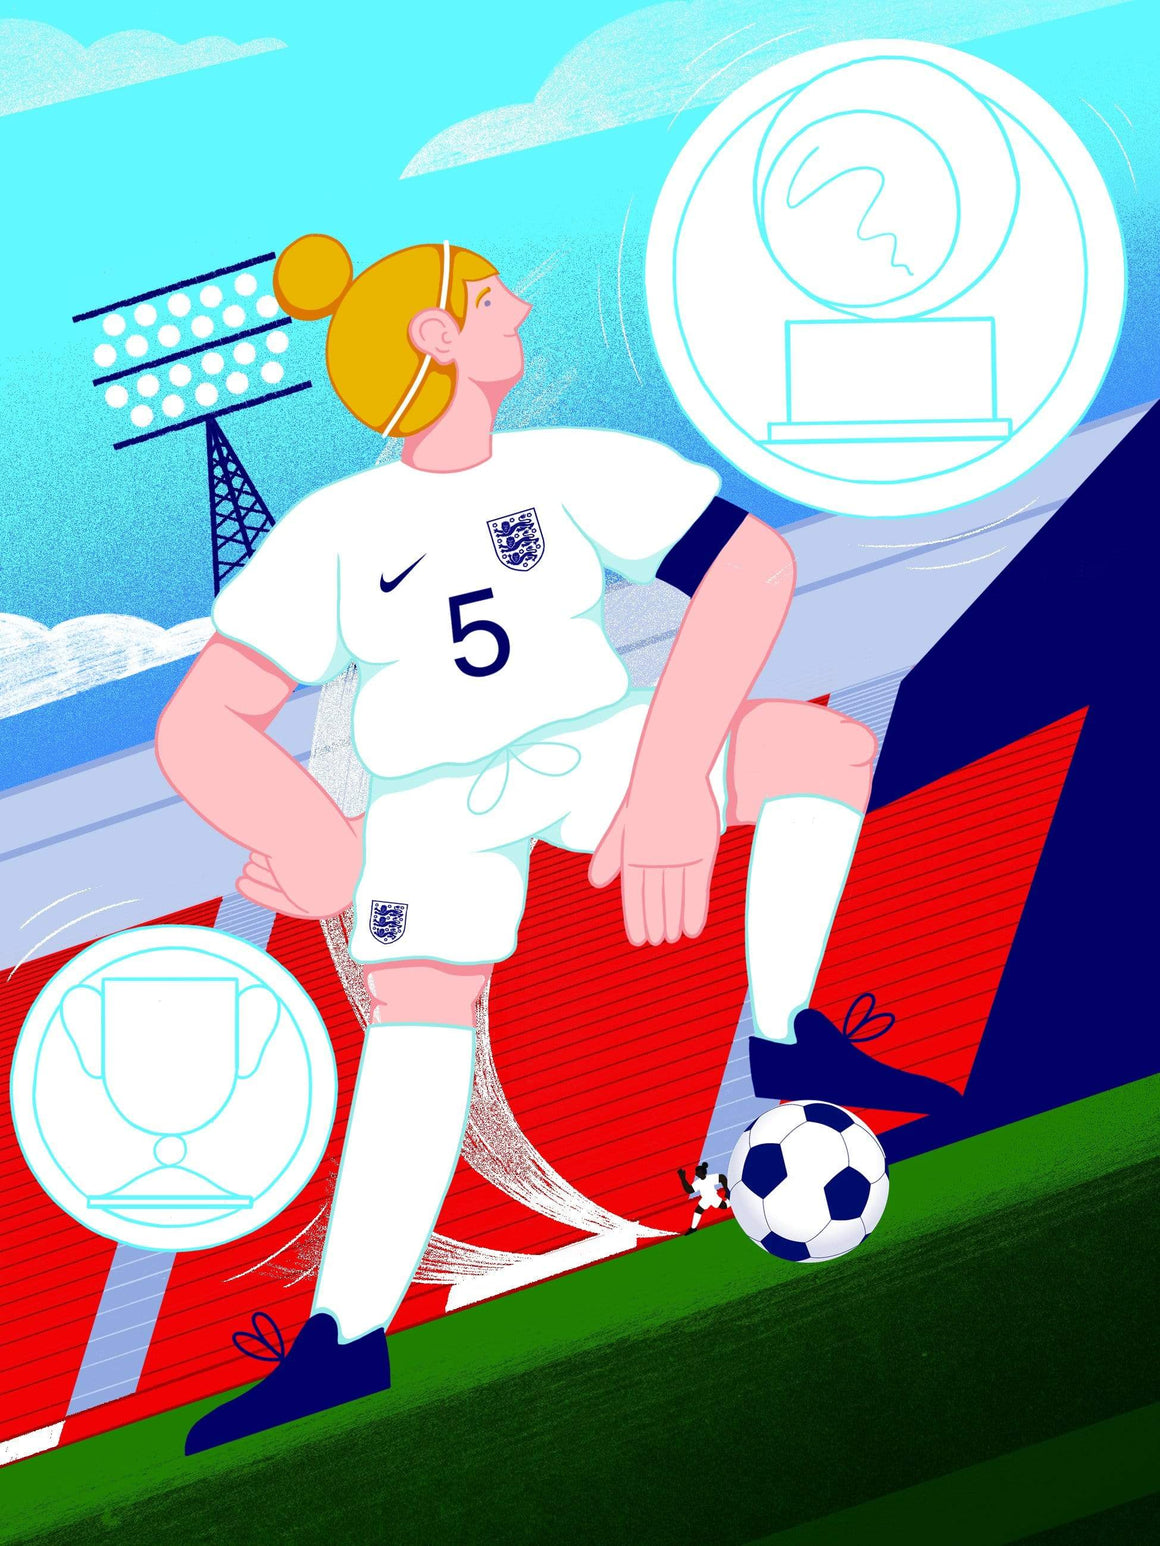 Steph Houghton x England A3 print - Football Shirt Collective